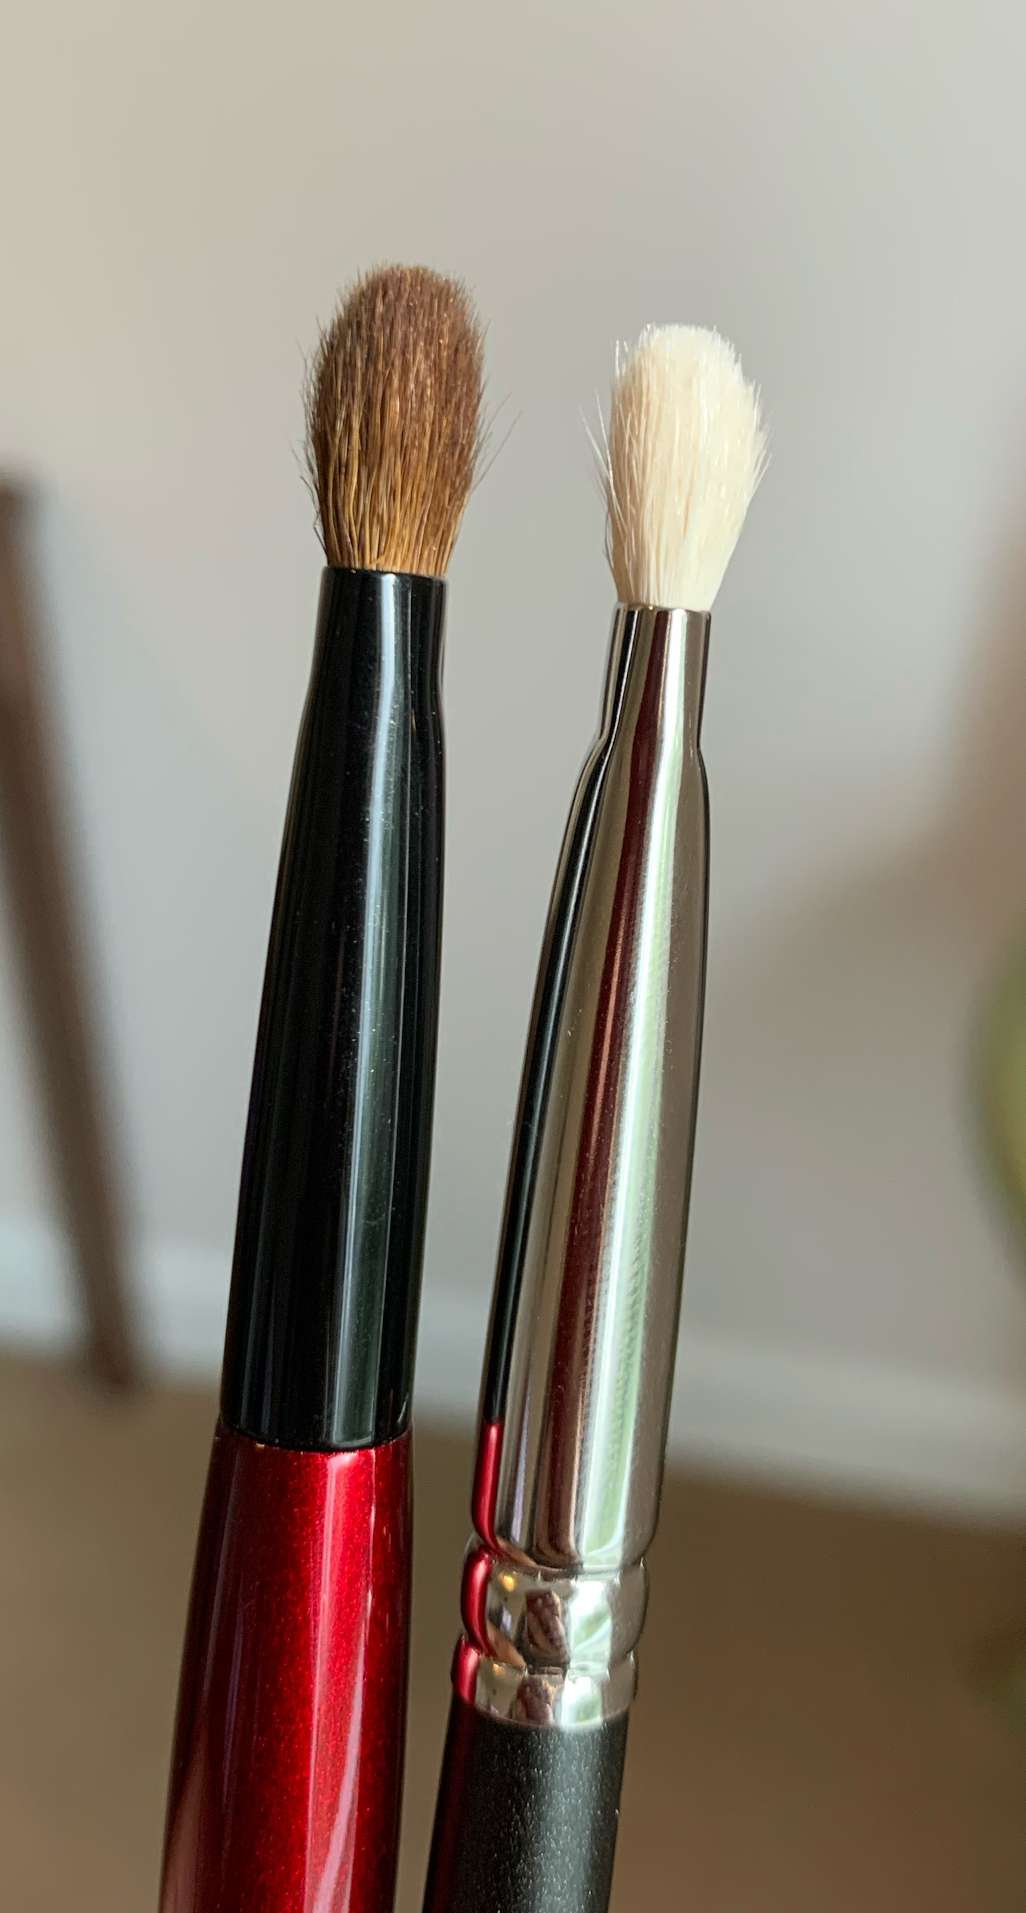 Sonia G Builder Pro Brush (left) and MAC 239 (right) Review